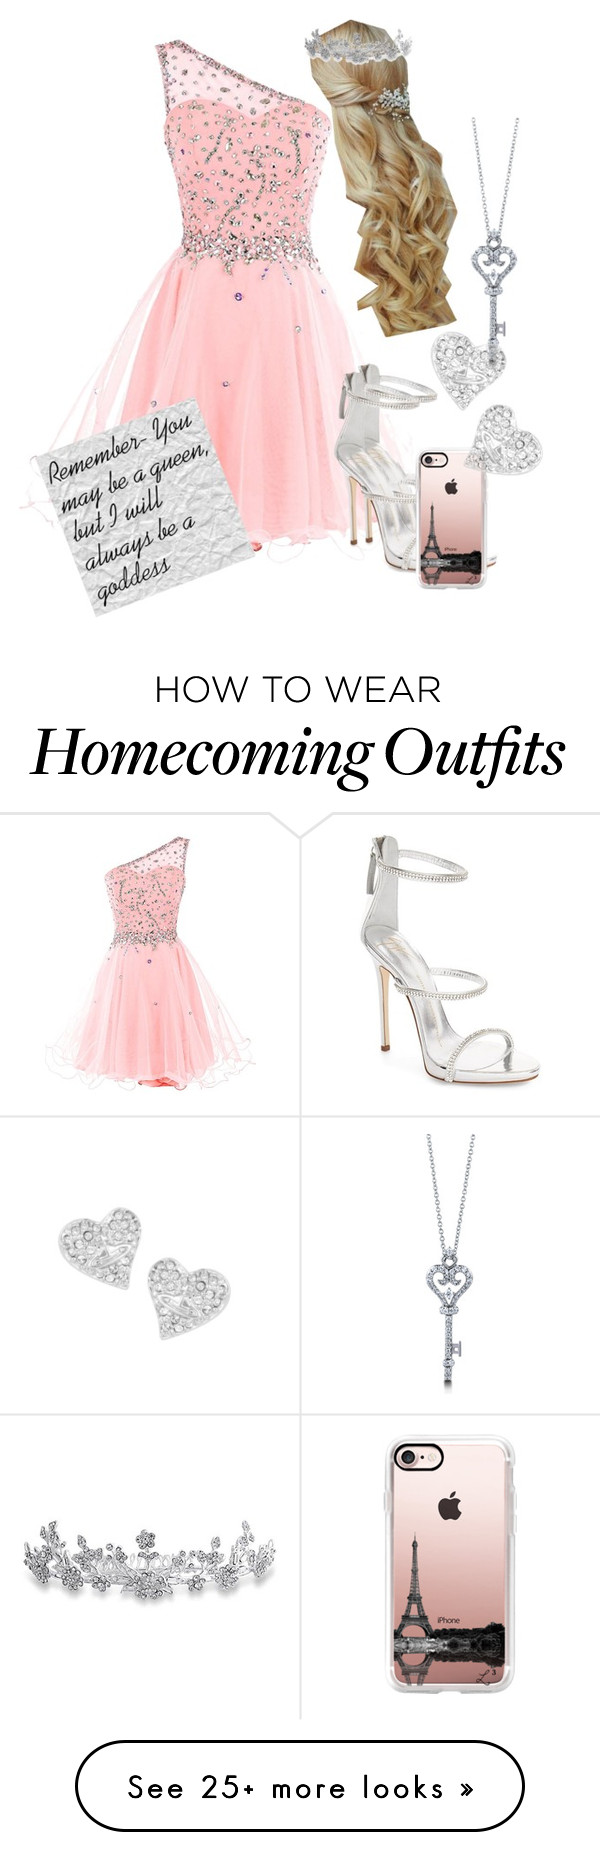 """""""Glimmer at Prom"""" by fabulously-awesome7 on Polyvore featuring Giuseppe Zanotti, BERRICLE, Casetify, Vivienne Westwood and Bling Jewelry"""